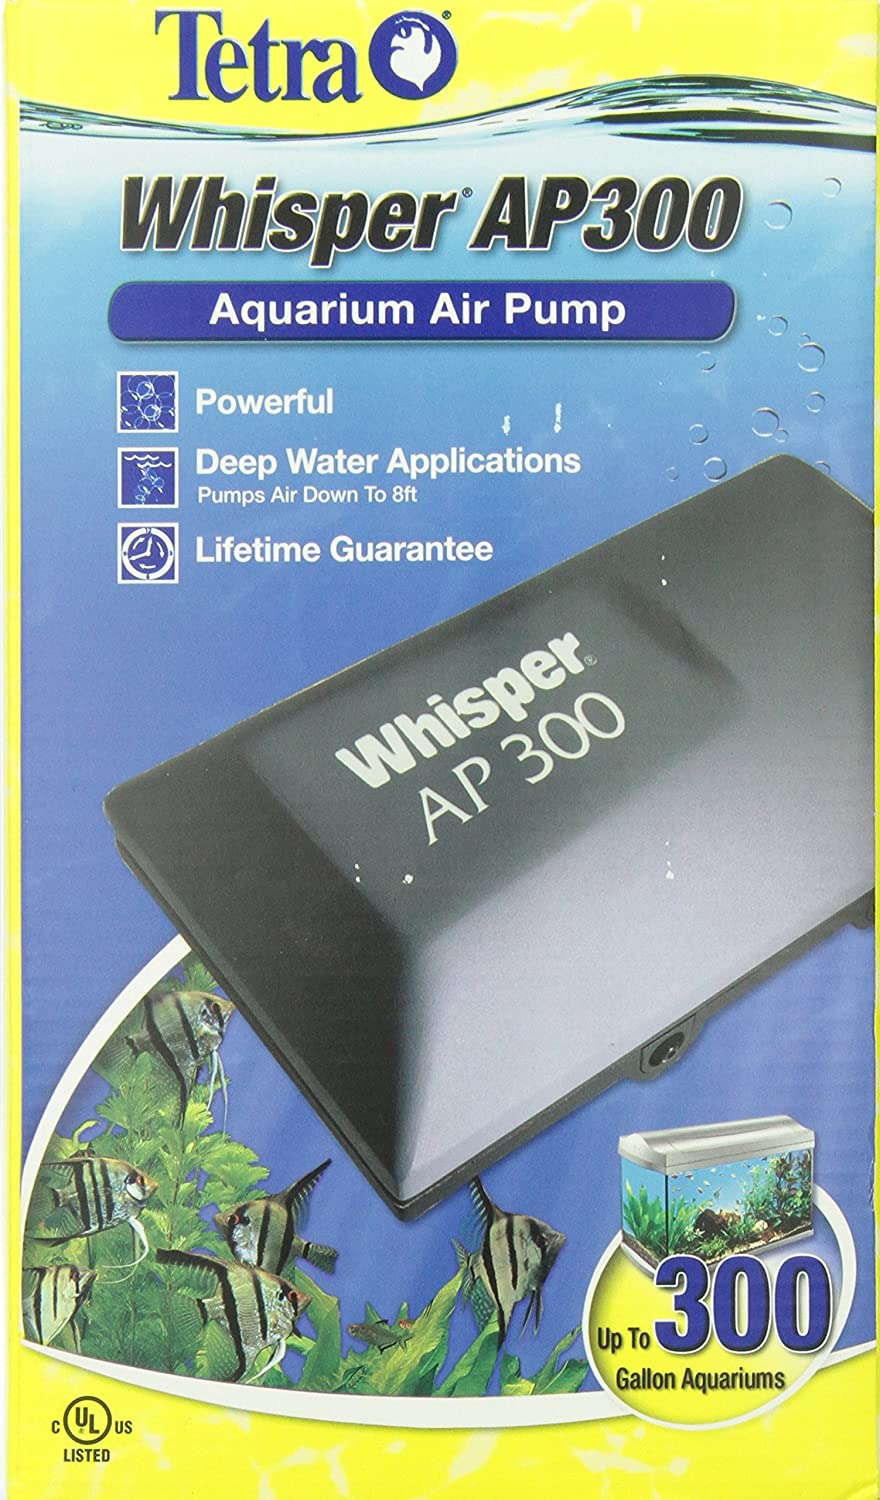 91Zm5Fak 4L._SL1500_ amazon com tetra 26075 whisper aquarium air pump ap300, up to  at bakdesigns.co